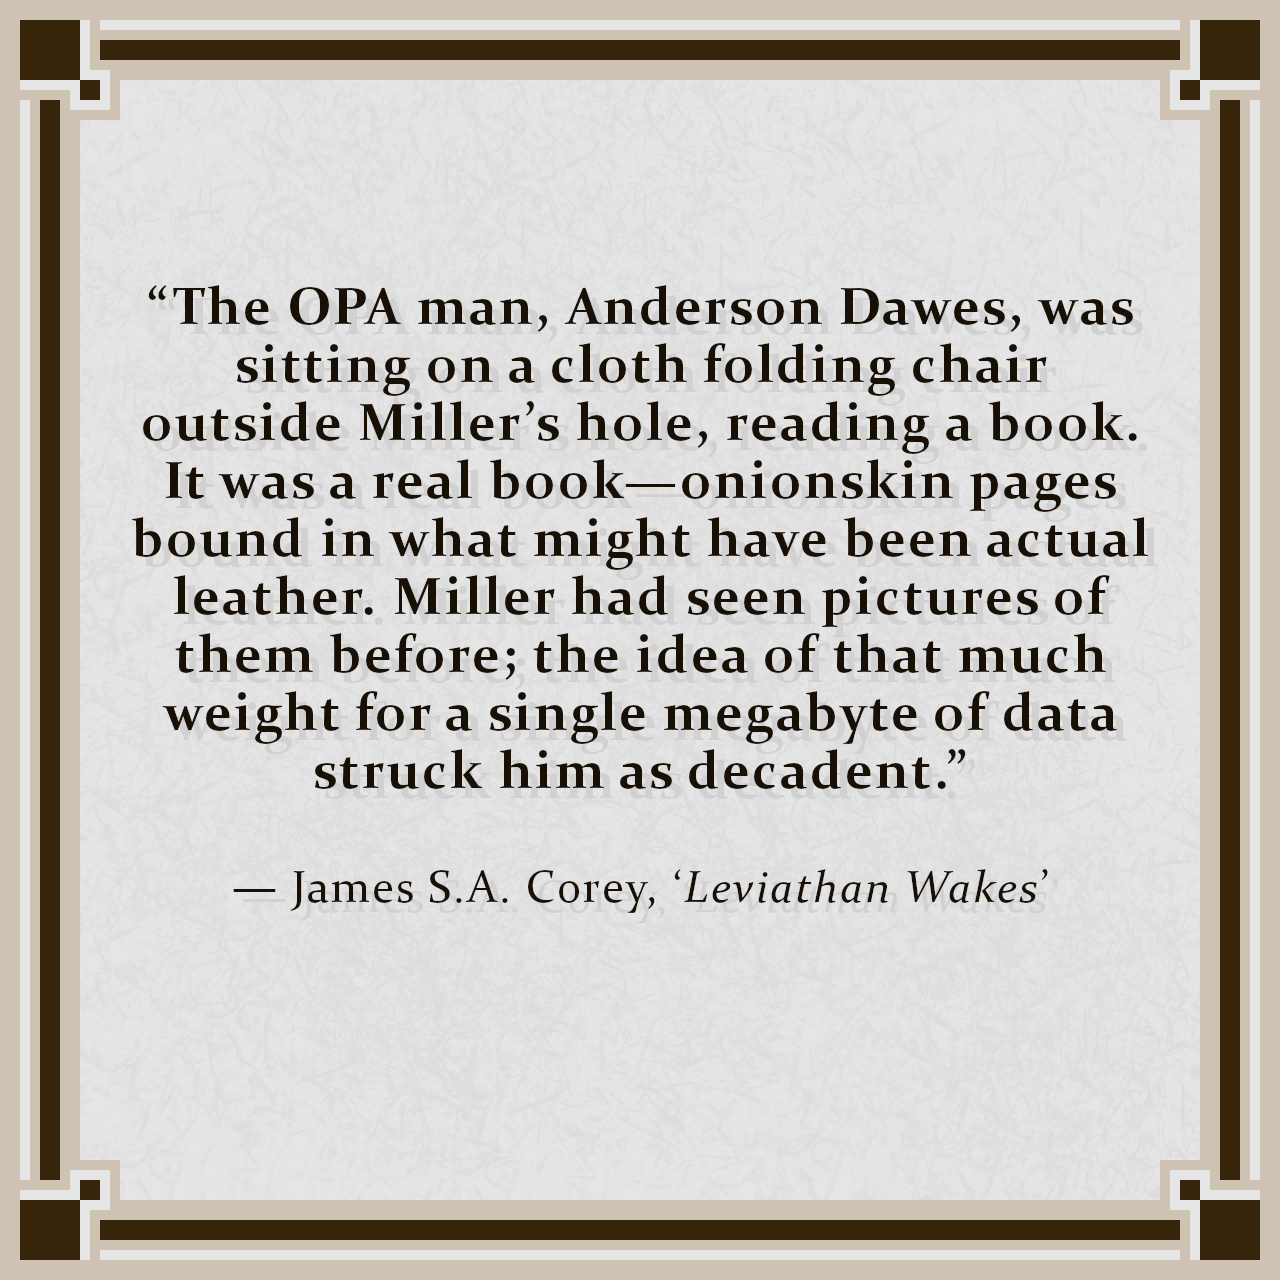 """""""The OPA man, Anderson Dawes, was sitting on a cloth folding chair outside Miller's hole, reading a book. It was a real book—onionskin pages bound in what might have been actual leather. Miller had seen pictures of them before; the idea of that much weight for a single megabyte of data struck him as decadent."""" — James S.A. Corey, 'Leviathan Wakes'"""